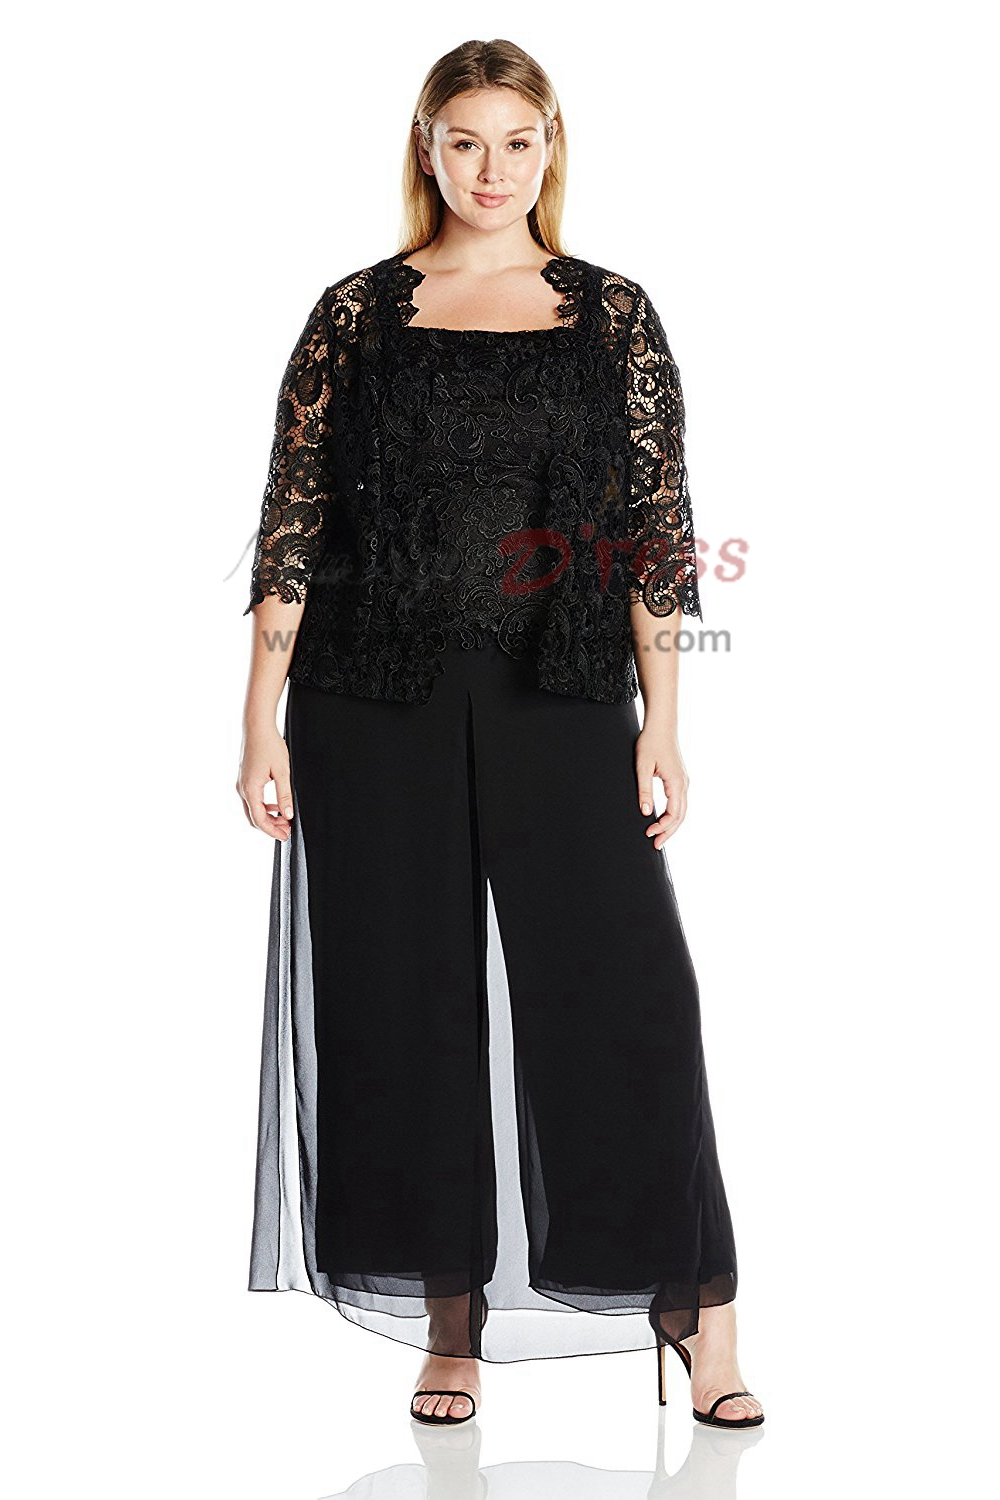 light royal mother of the bride pant suits outfit dress